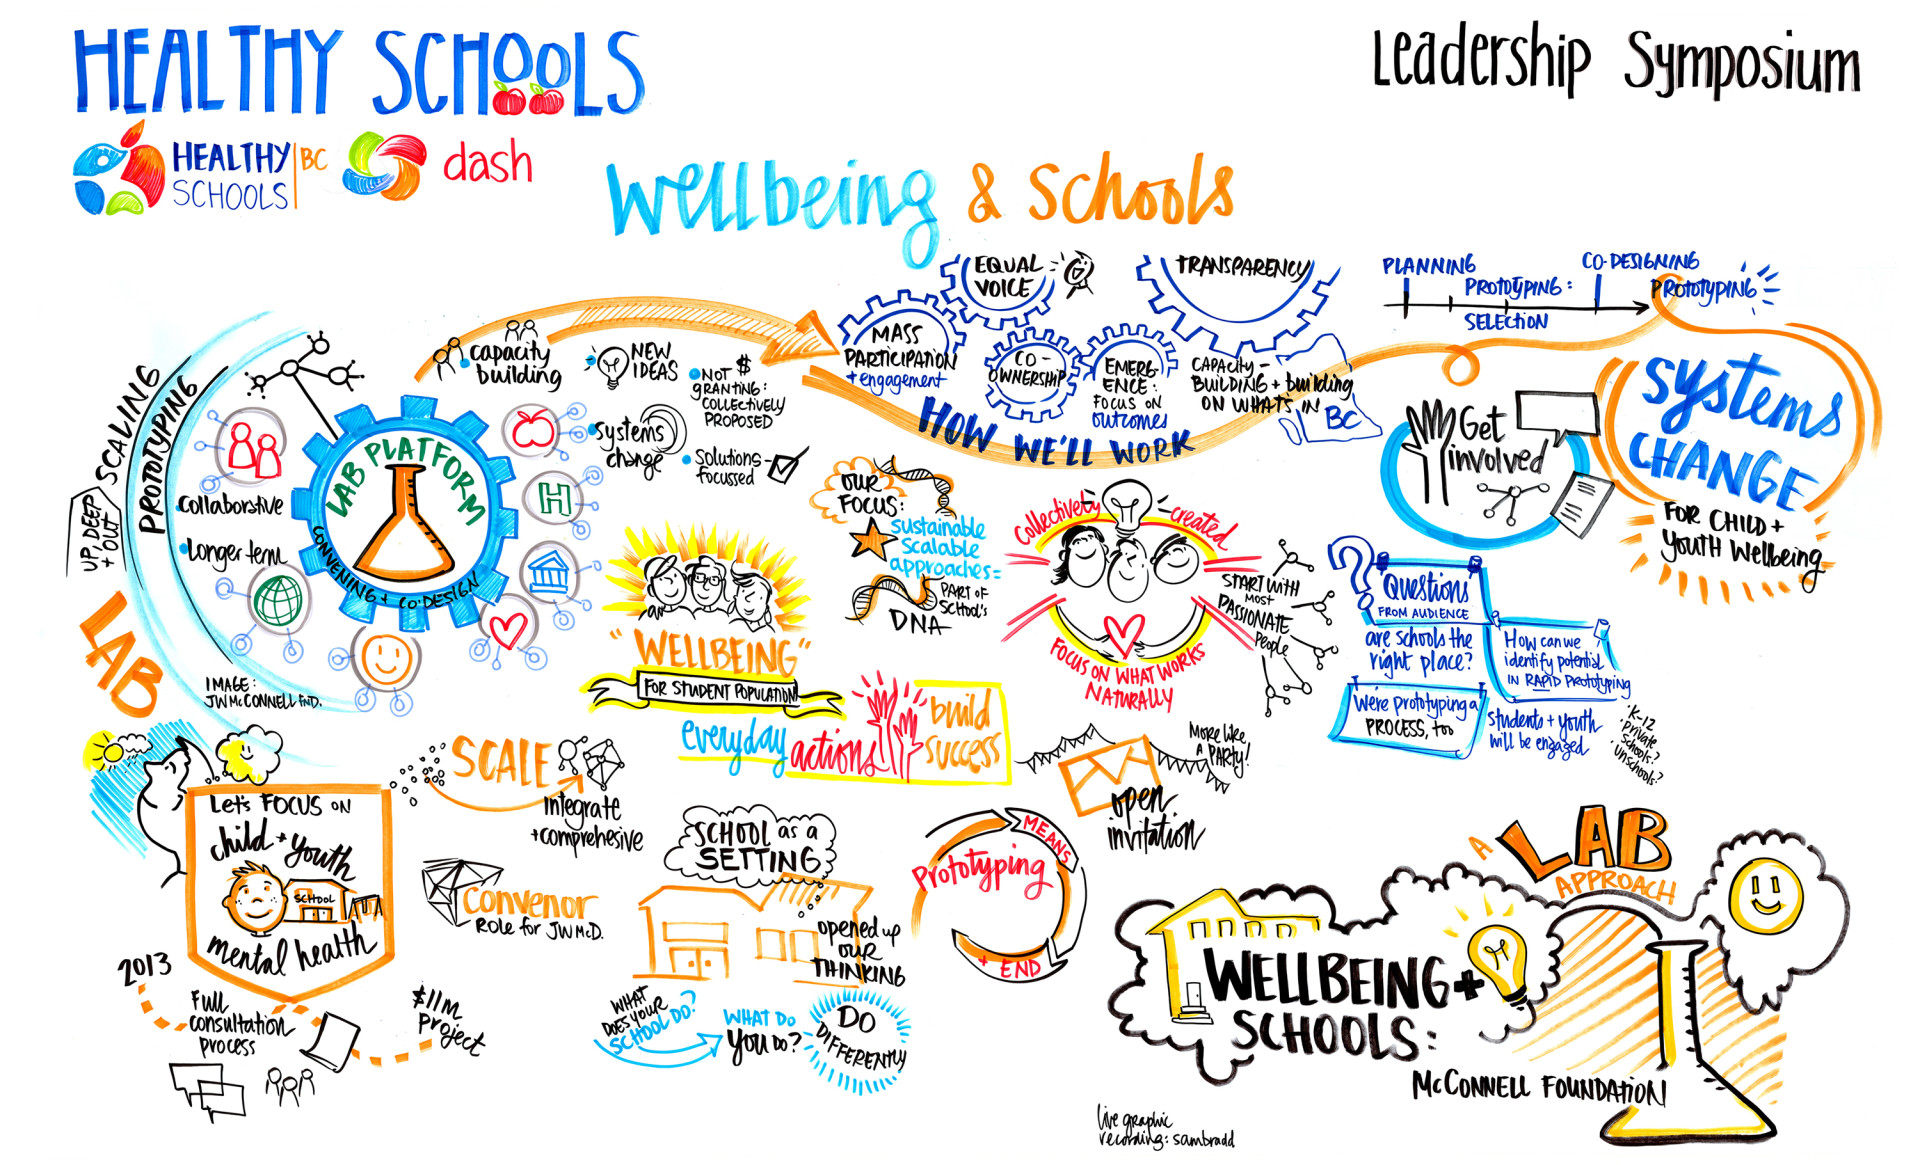 graphic recording, graphic facilitation, healthy schools bc, well being, JW McConnell Foundation, Lab approach, sam bradd